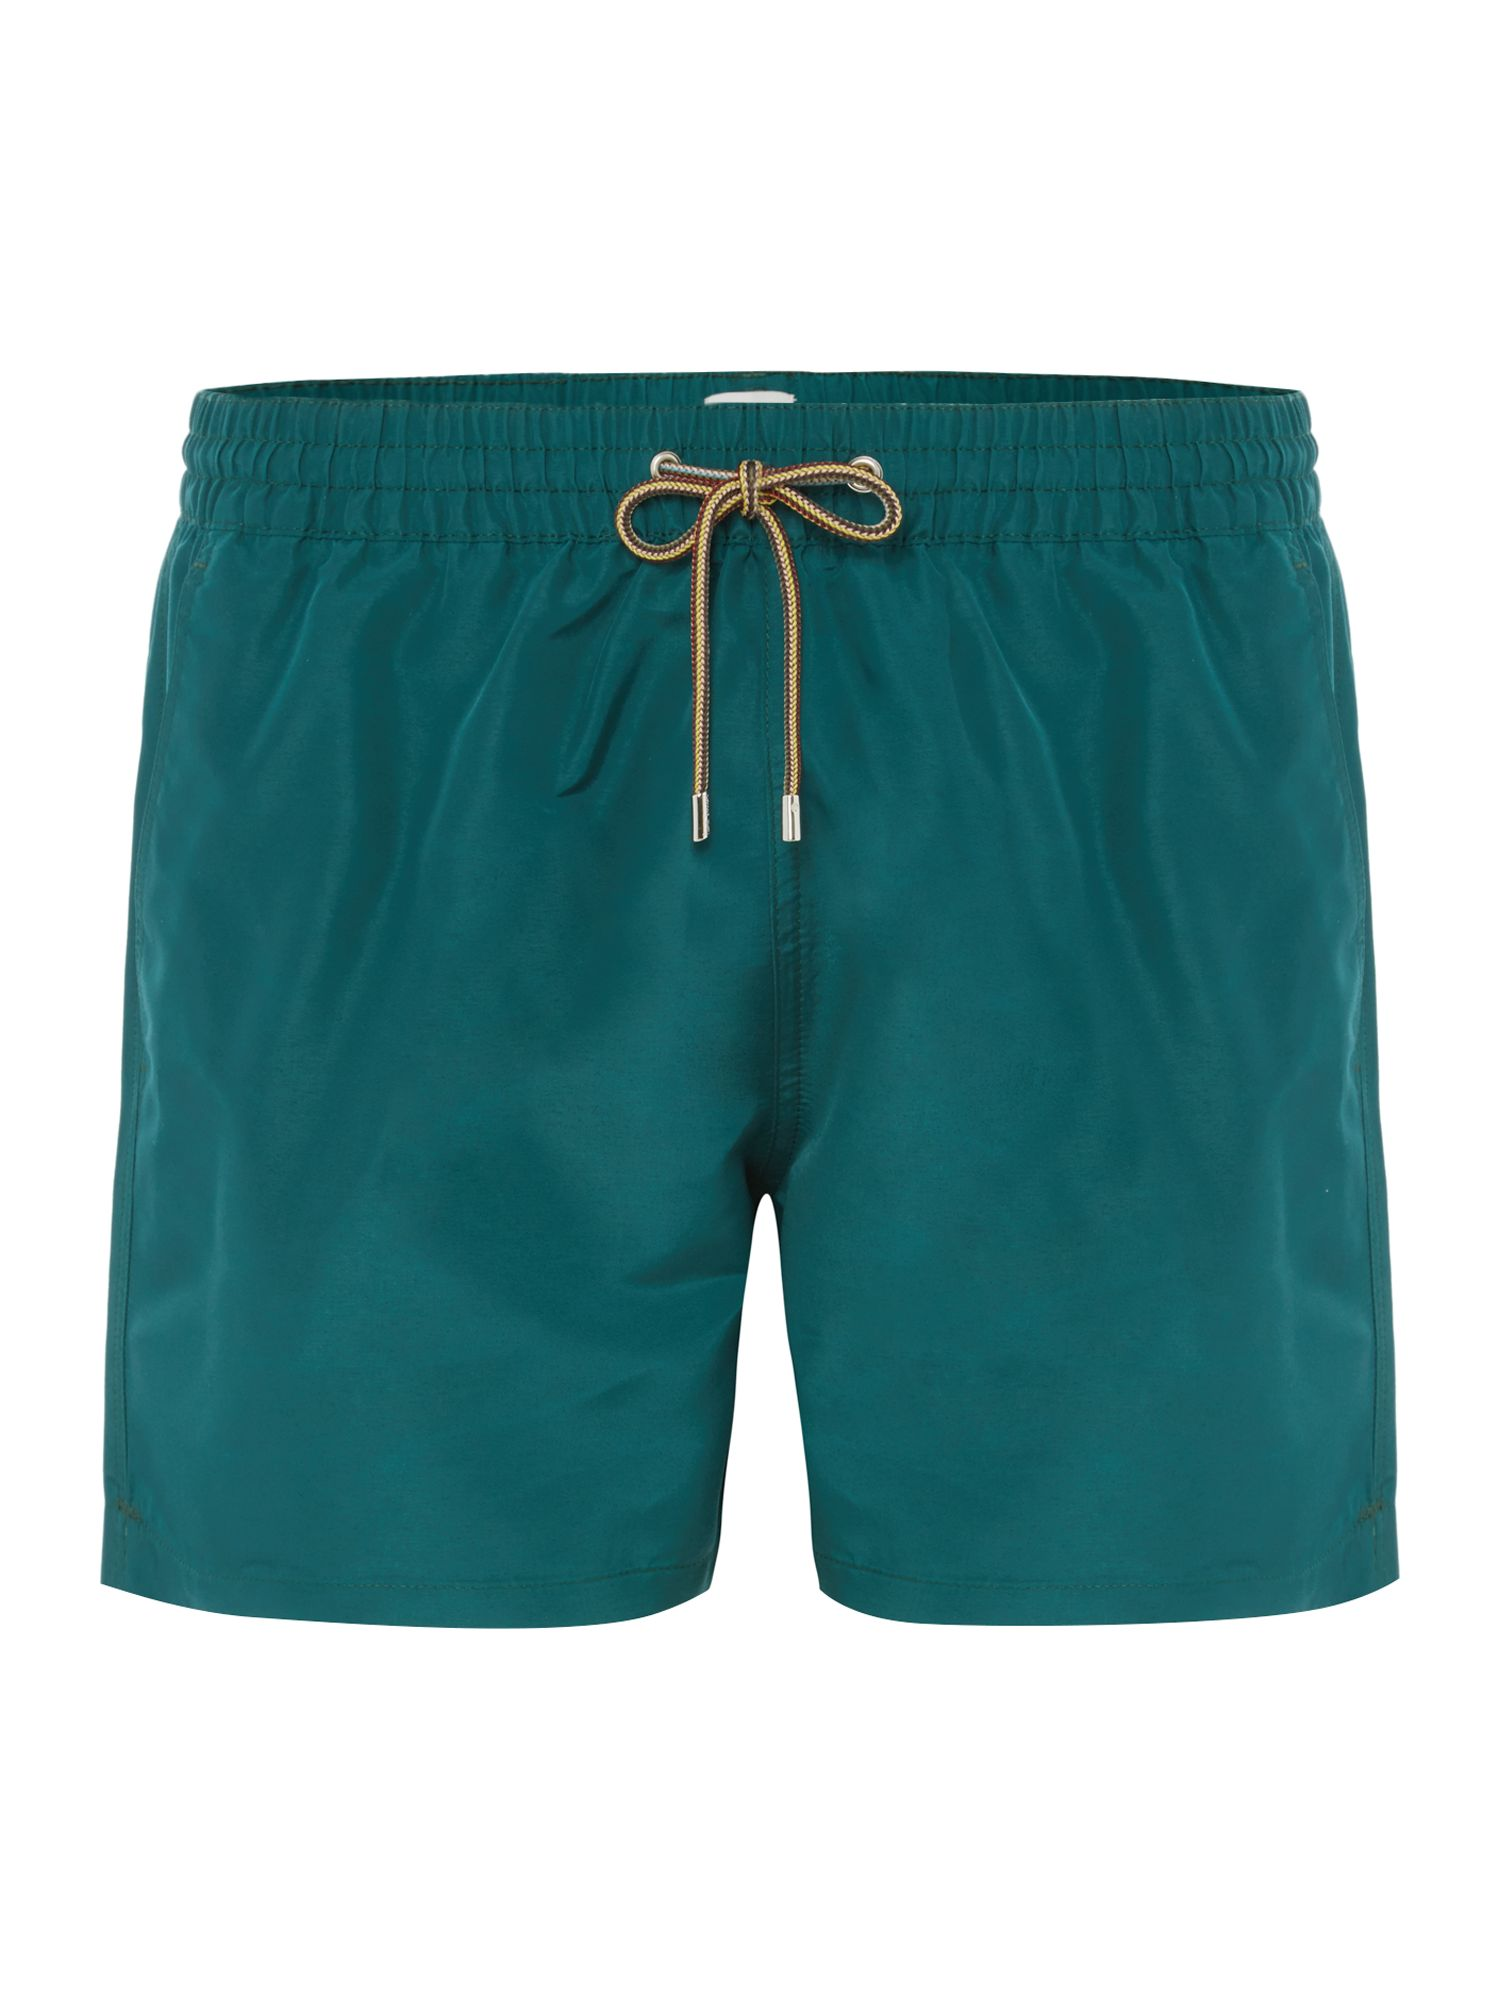 Men's Paul Smith Solid Colour Classic Swim Shorts, Green